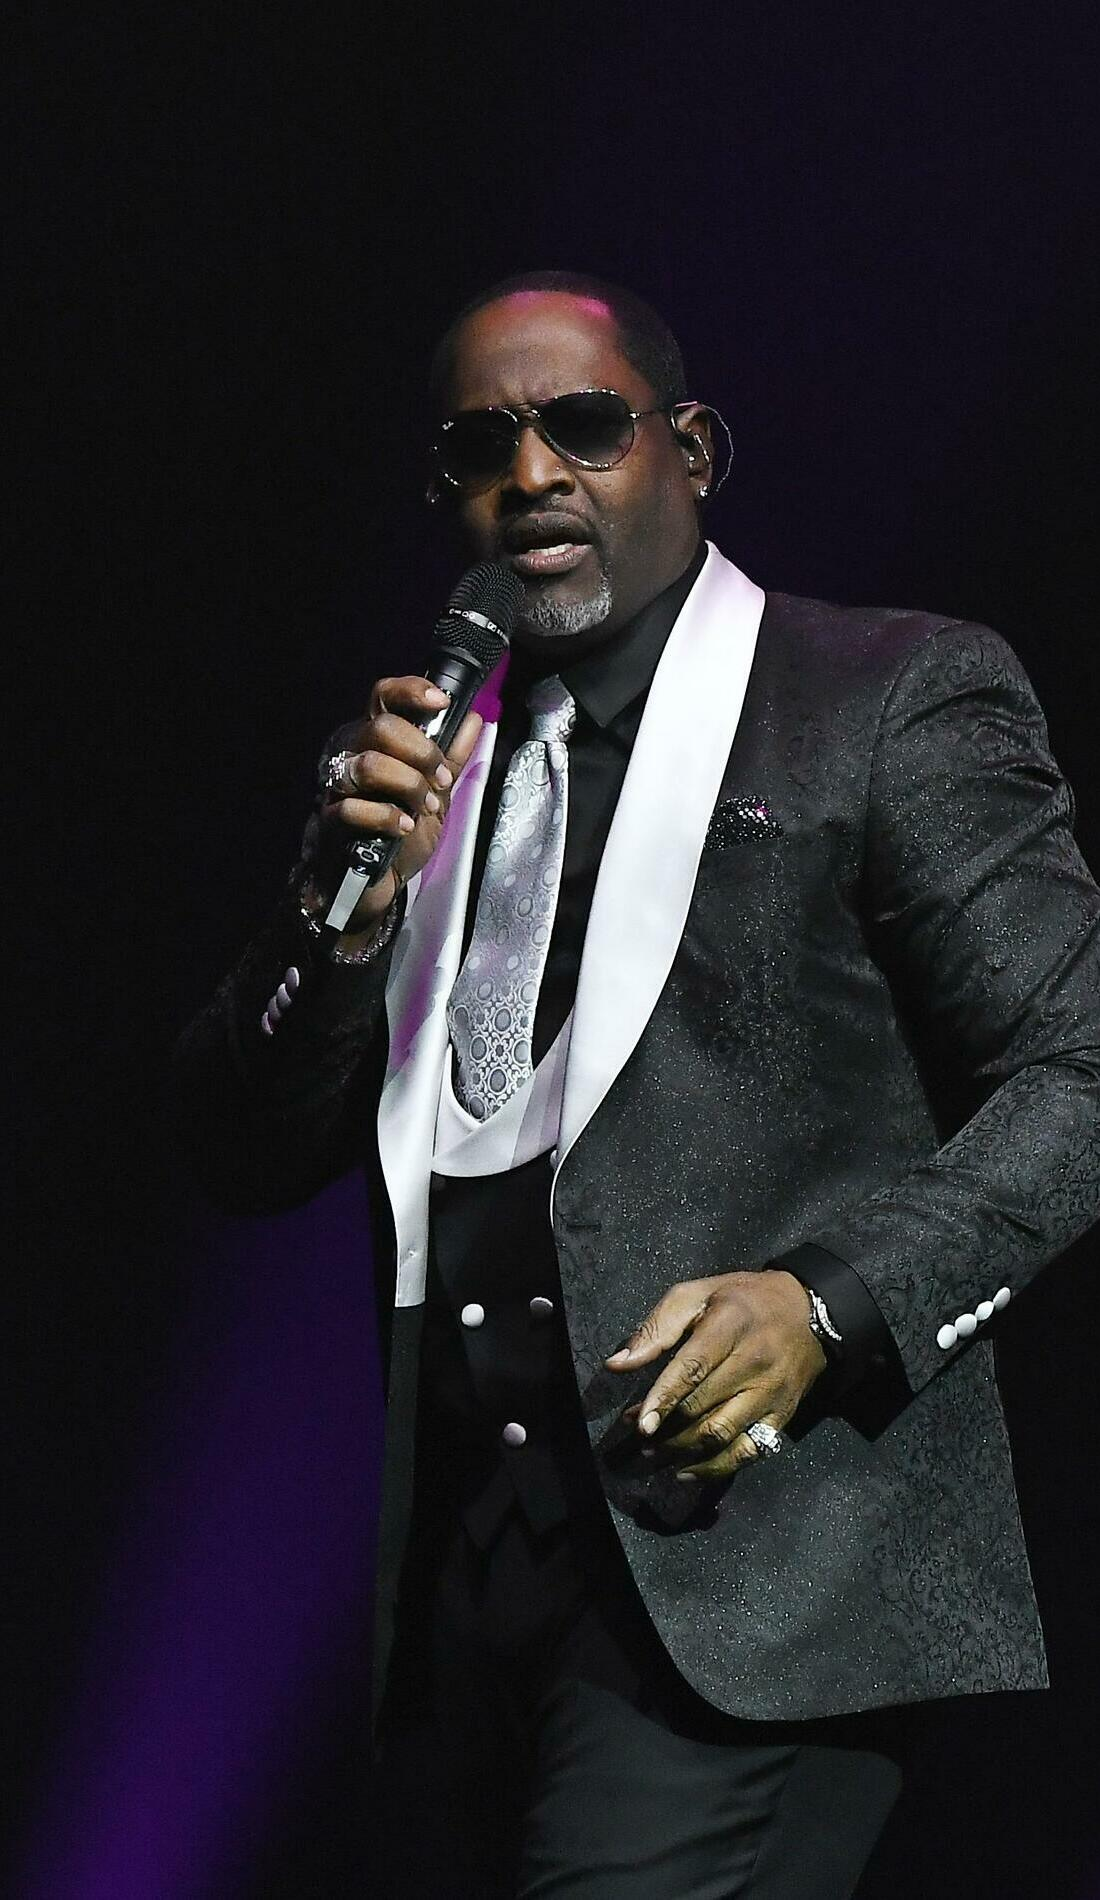 A Johnny Gill live event